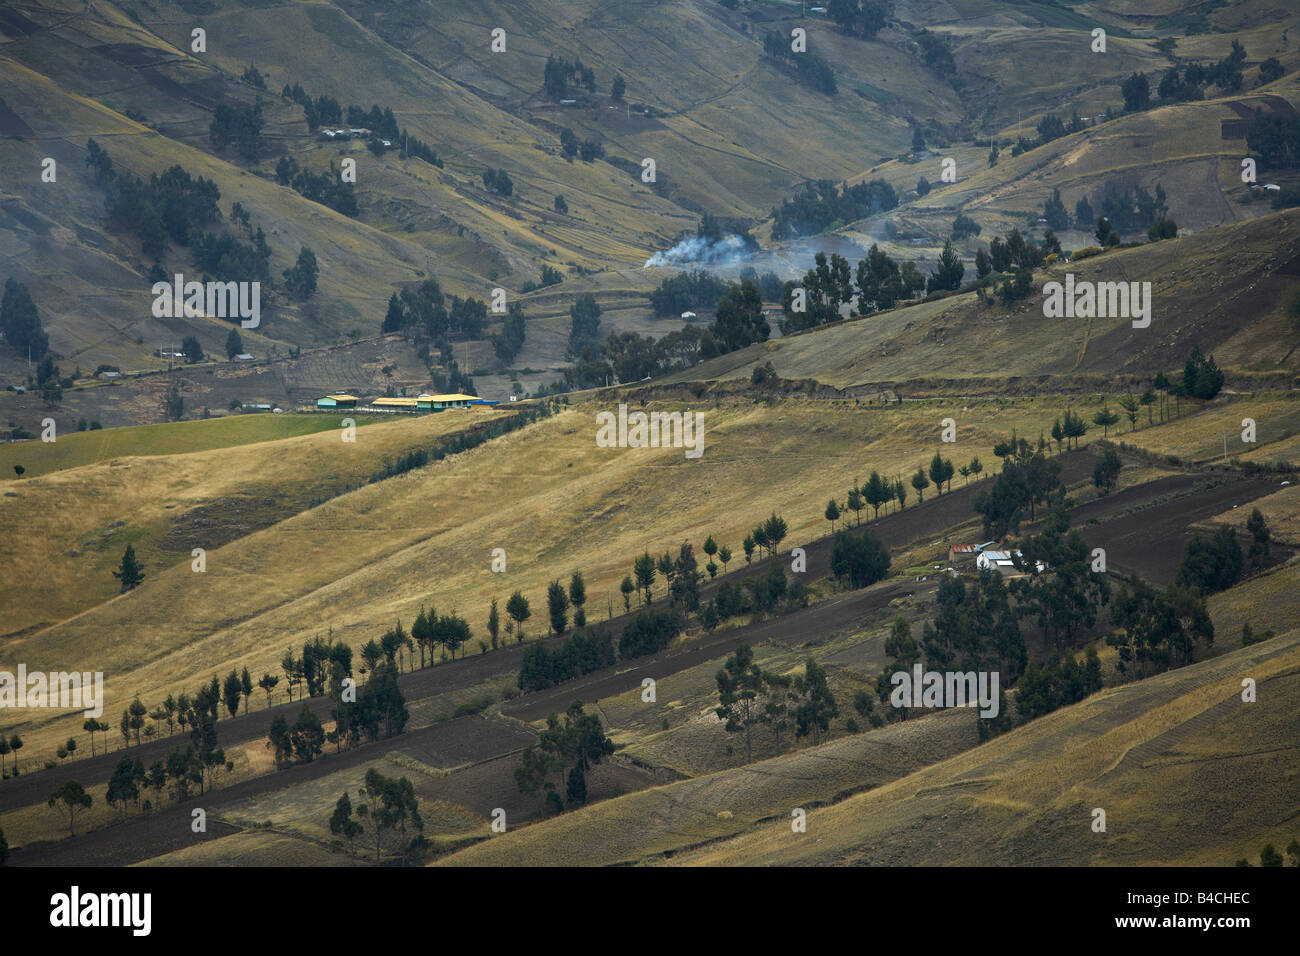 Fields in Andes Mountains, Ecuador - Stock Image